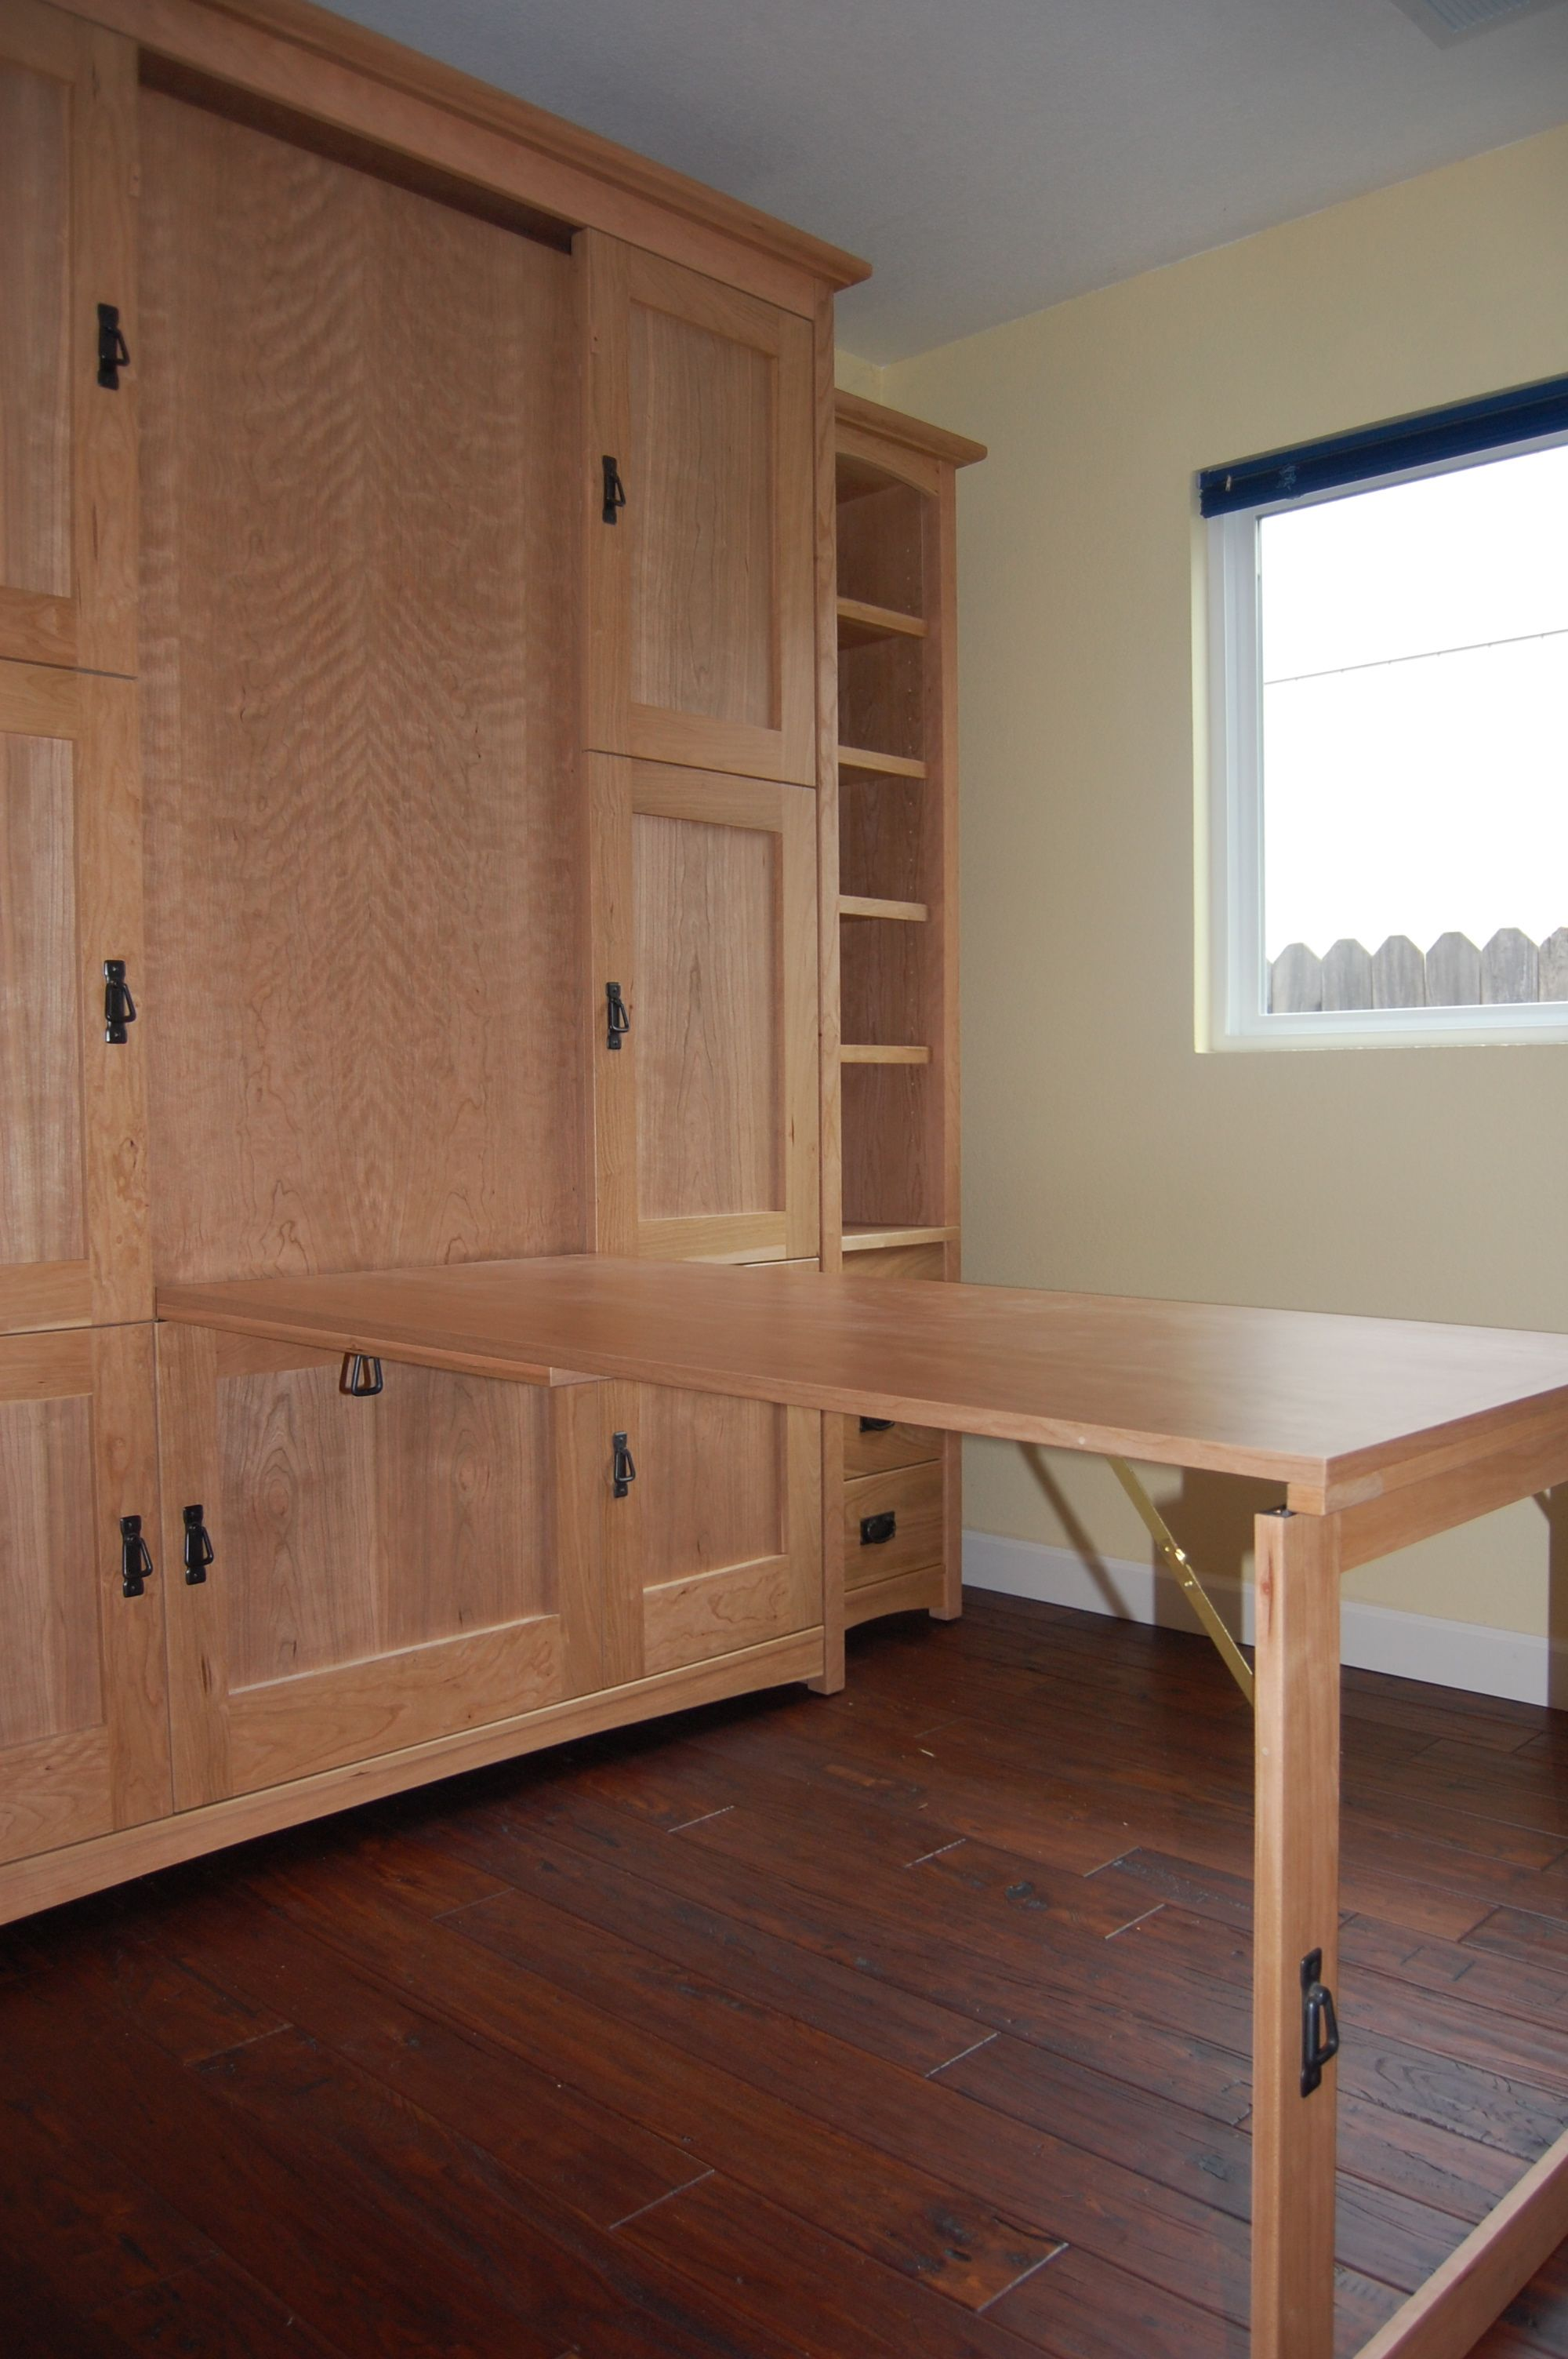 Wallbed (murphy bed) with hidden folddown table or desk